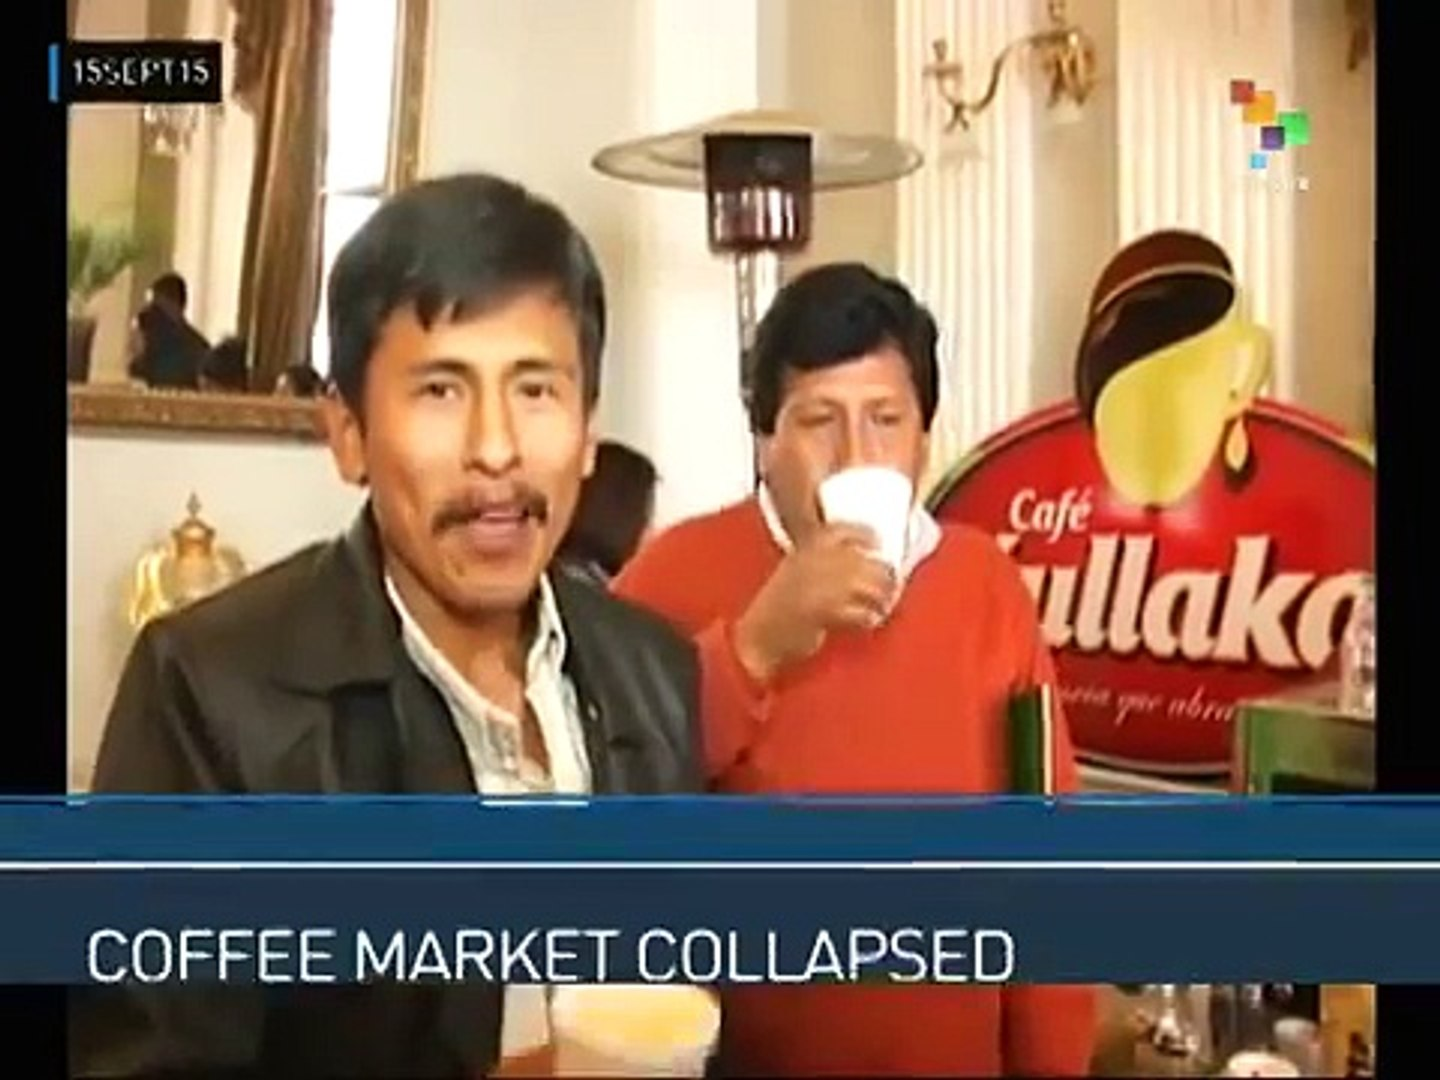 Bolivia: Coffee Production Down, but Industry Seeks Recovery